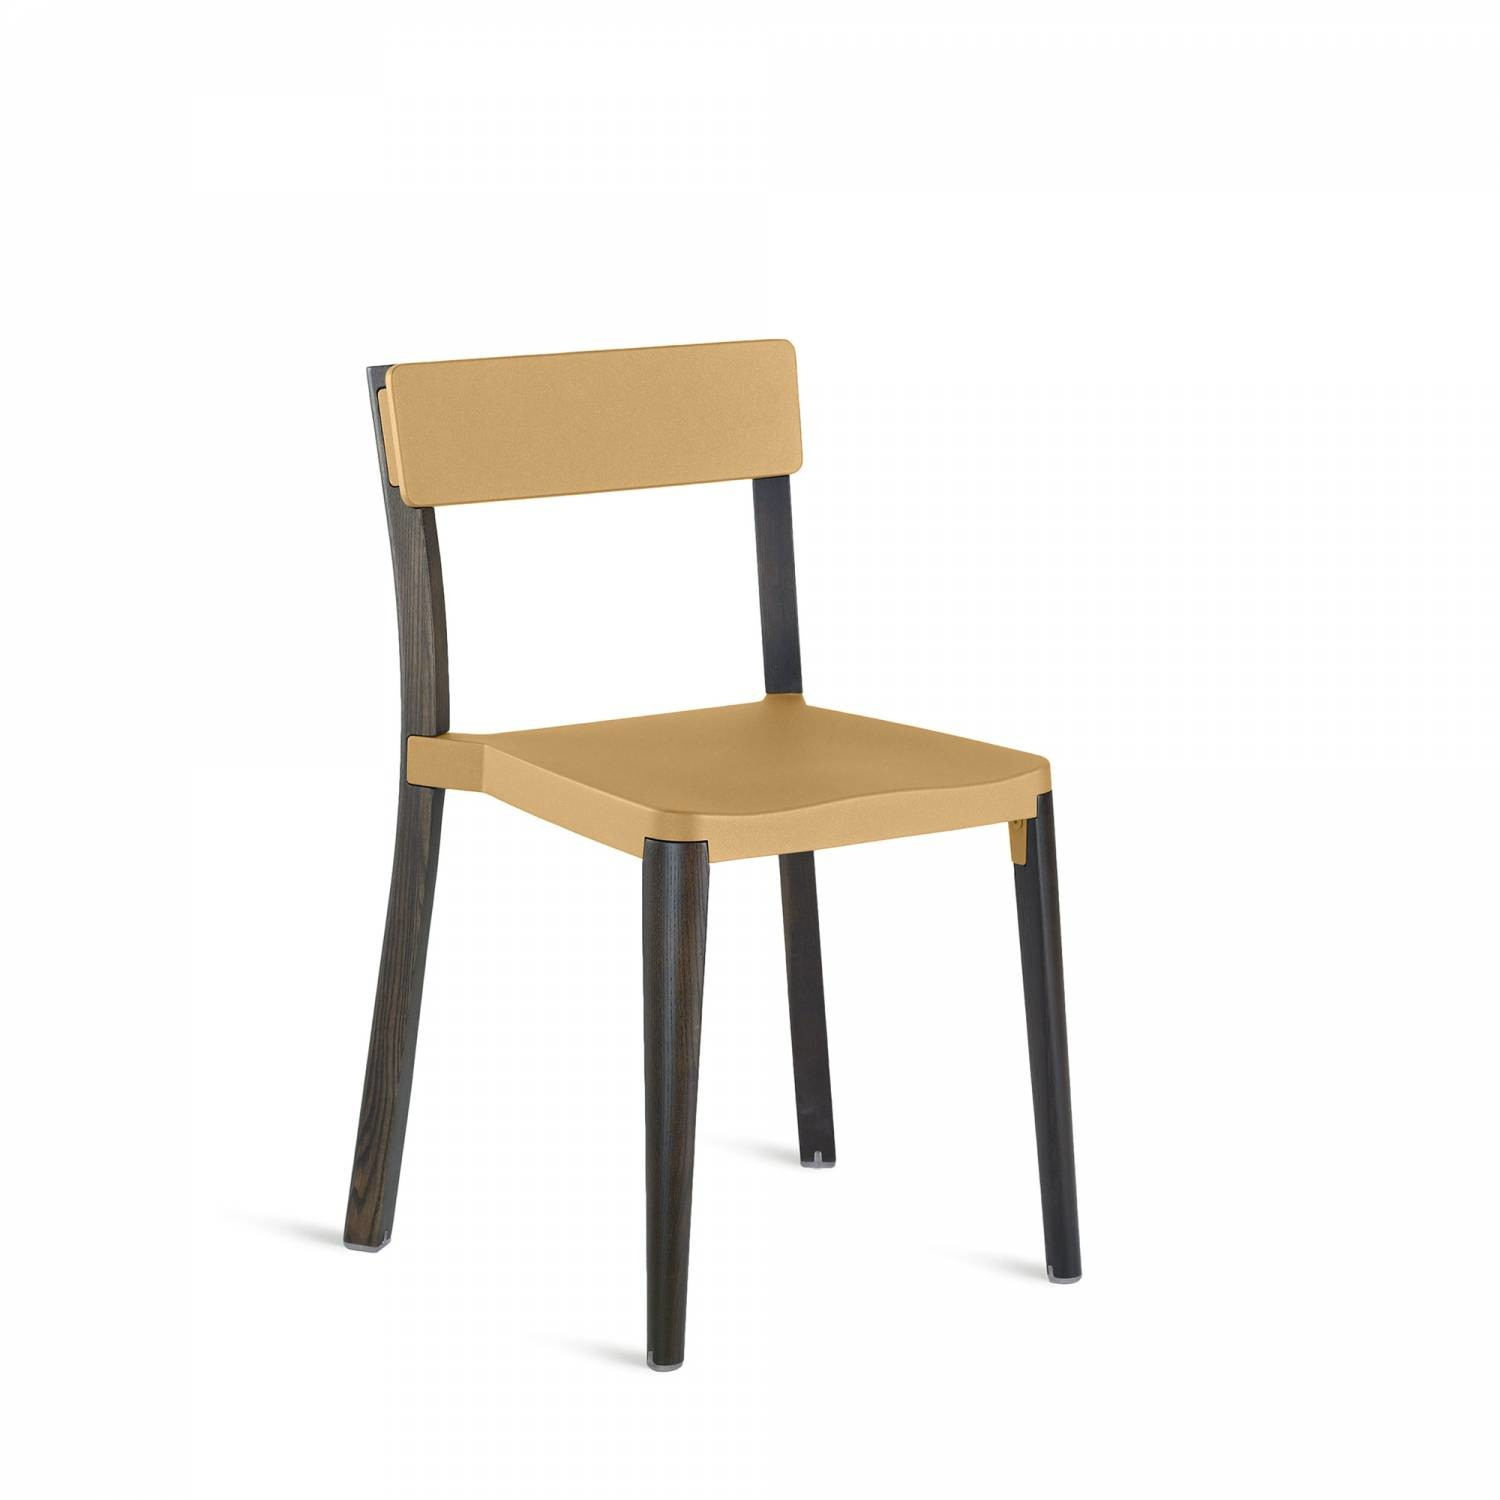 Lancaster Stacking Chair Sand, Dark Wood Base, Without Seat Pad, Without Back Pad